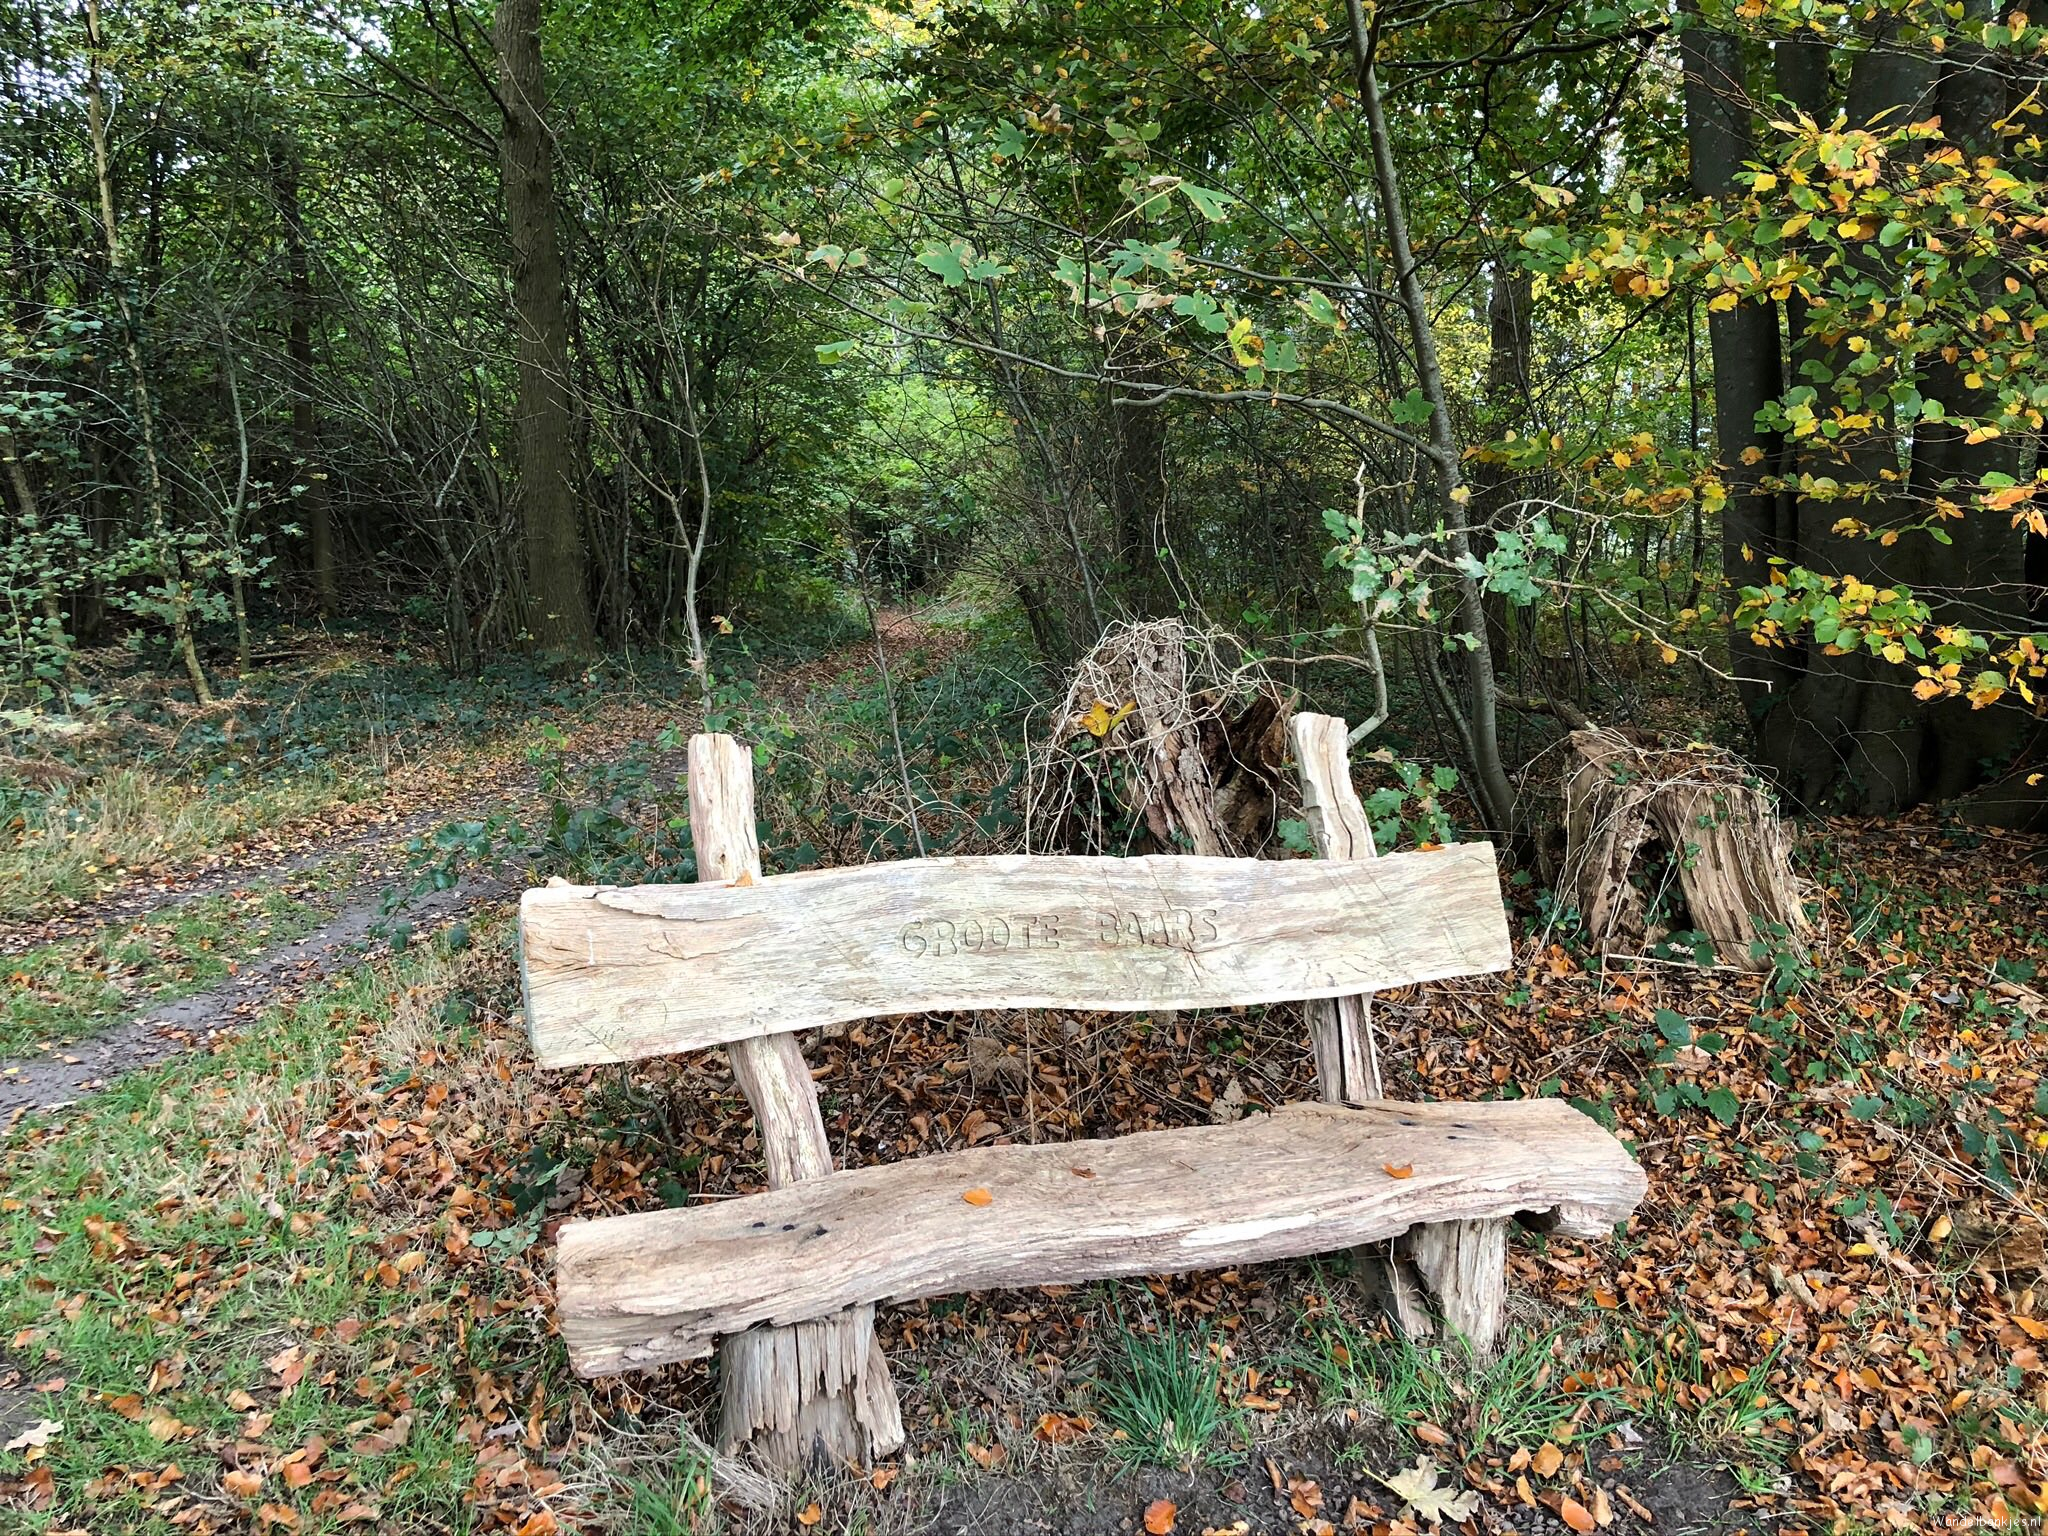 rt-gertientje-and-another-nice-walking-bench-spotted-for-walkersbenches-walking-benches-in-eesveen-https-t-co-buf9gd4wtm